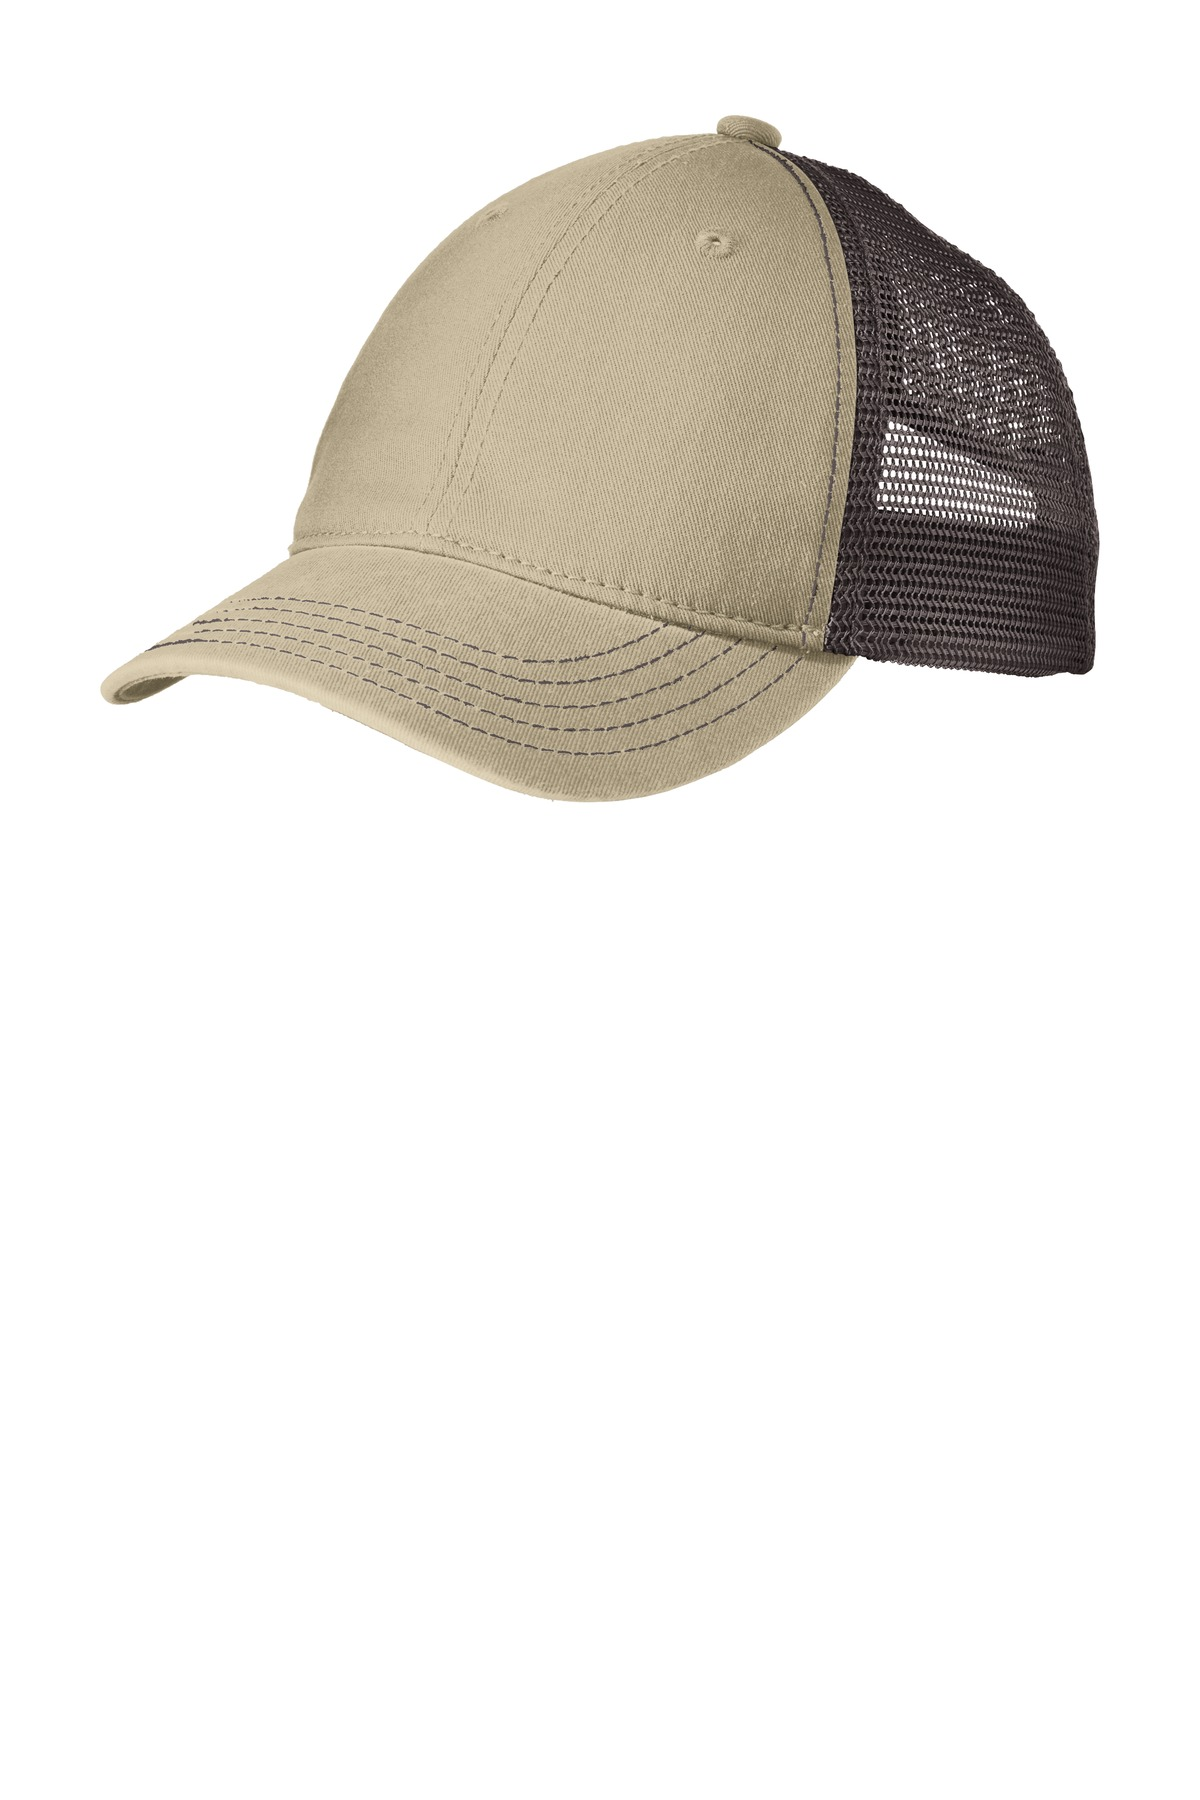 District ®  Super Soft Mesh Back Cap. DT630 - Khaki/ Chocolate Brown